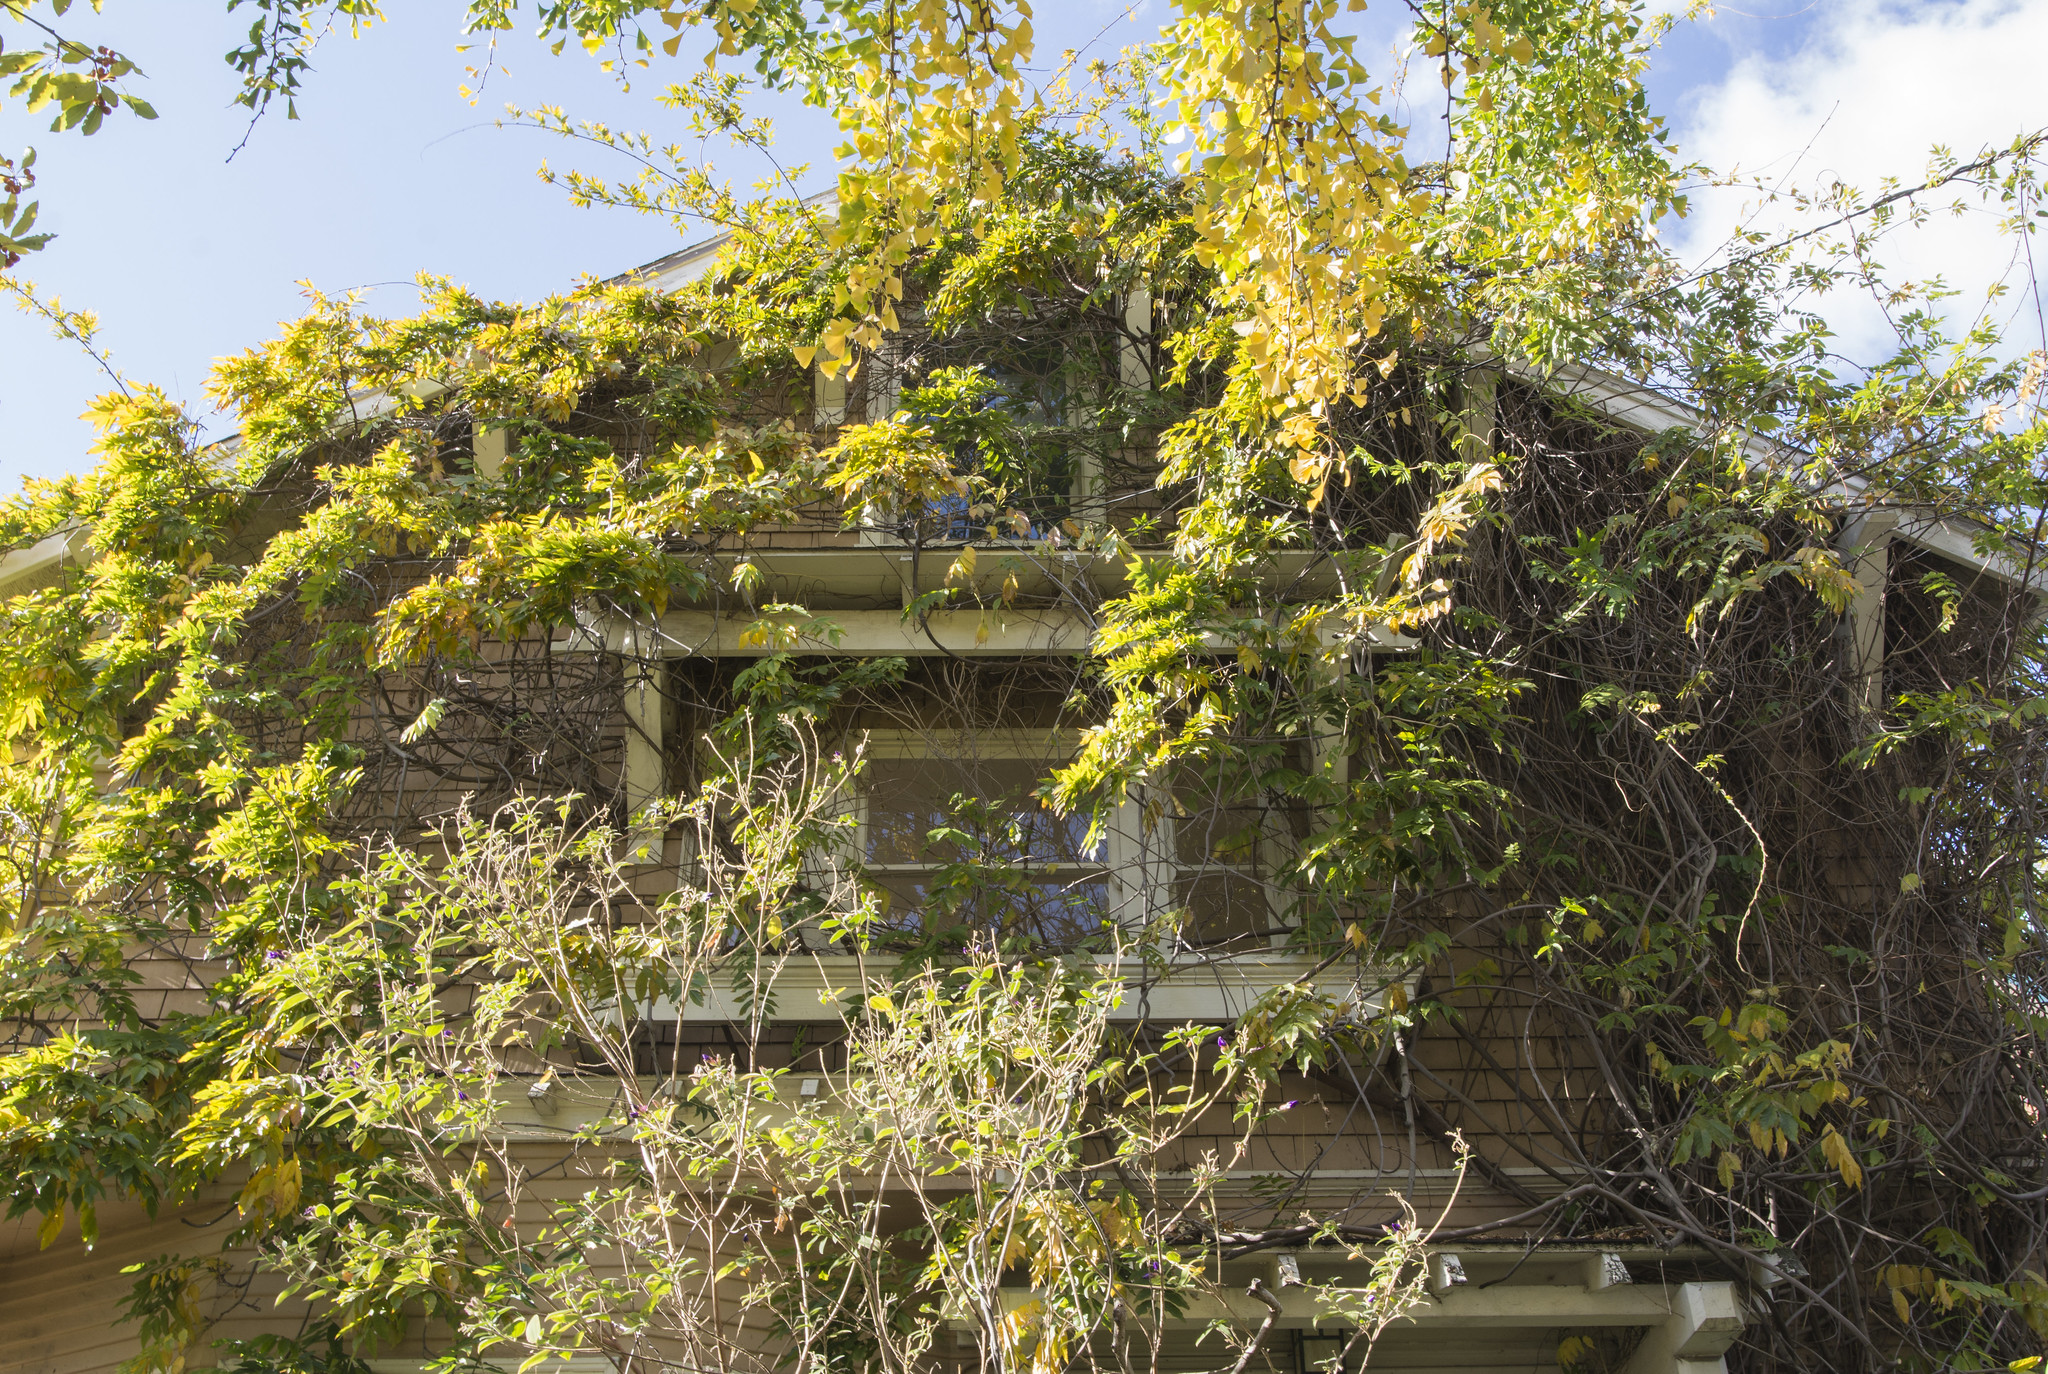 house covered in vines